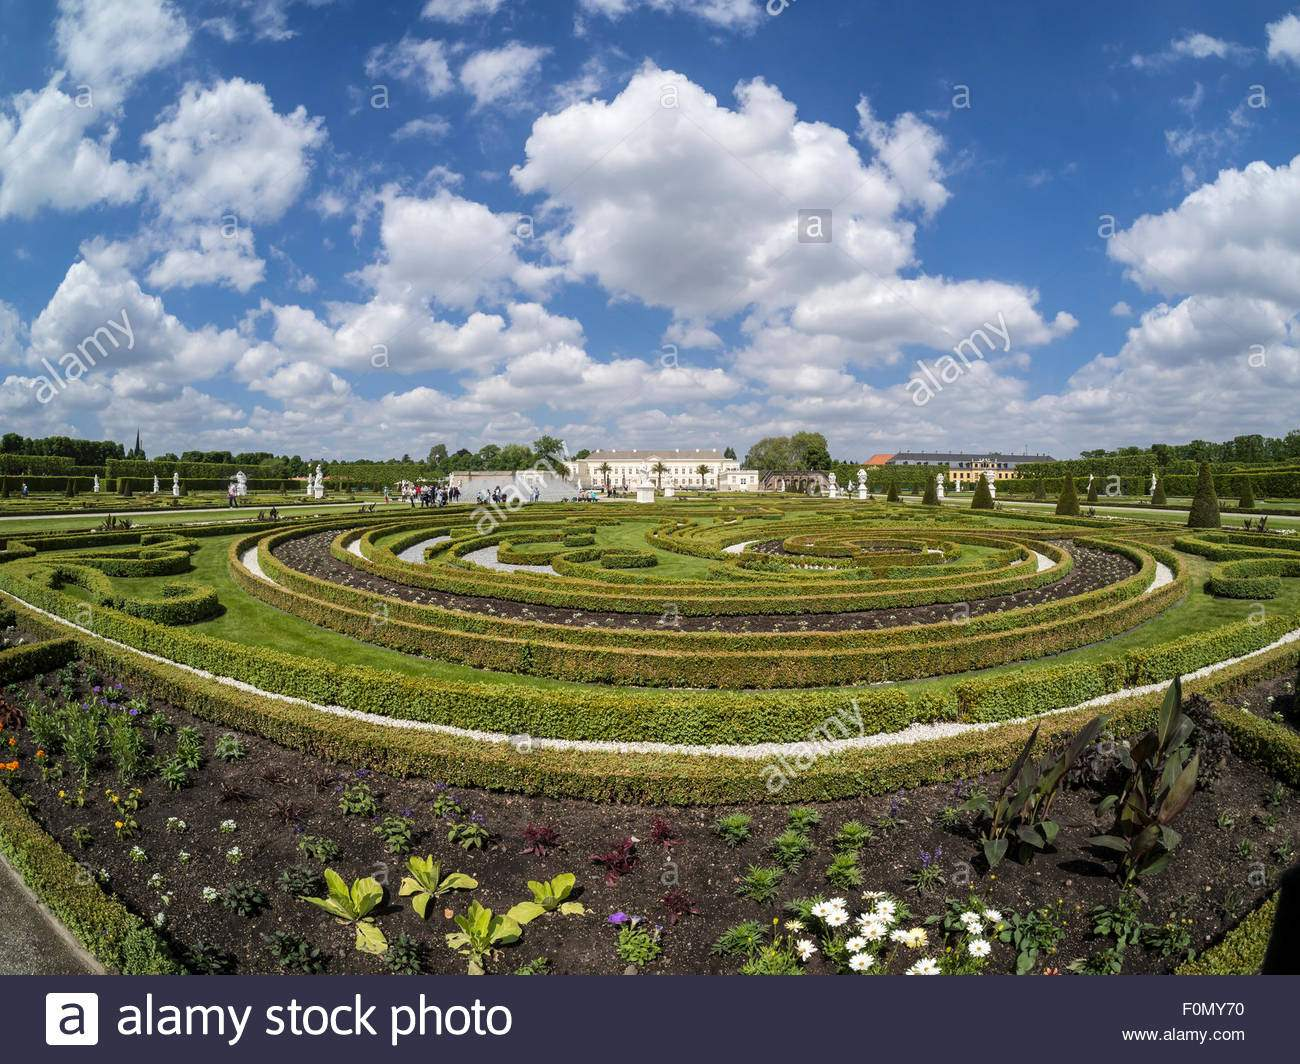 stock photo herrenhaeuser gaerten park at castle herrenhausen hannover germany